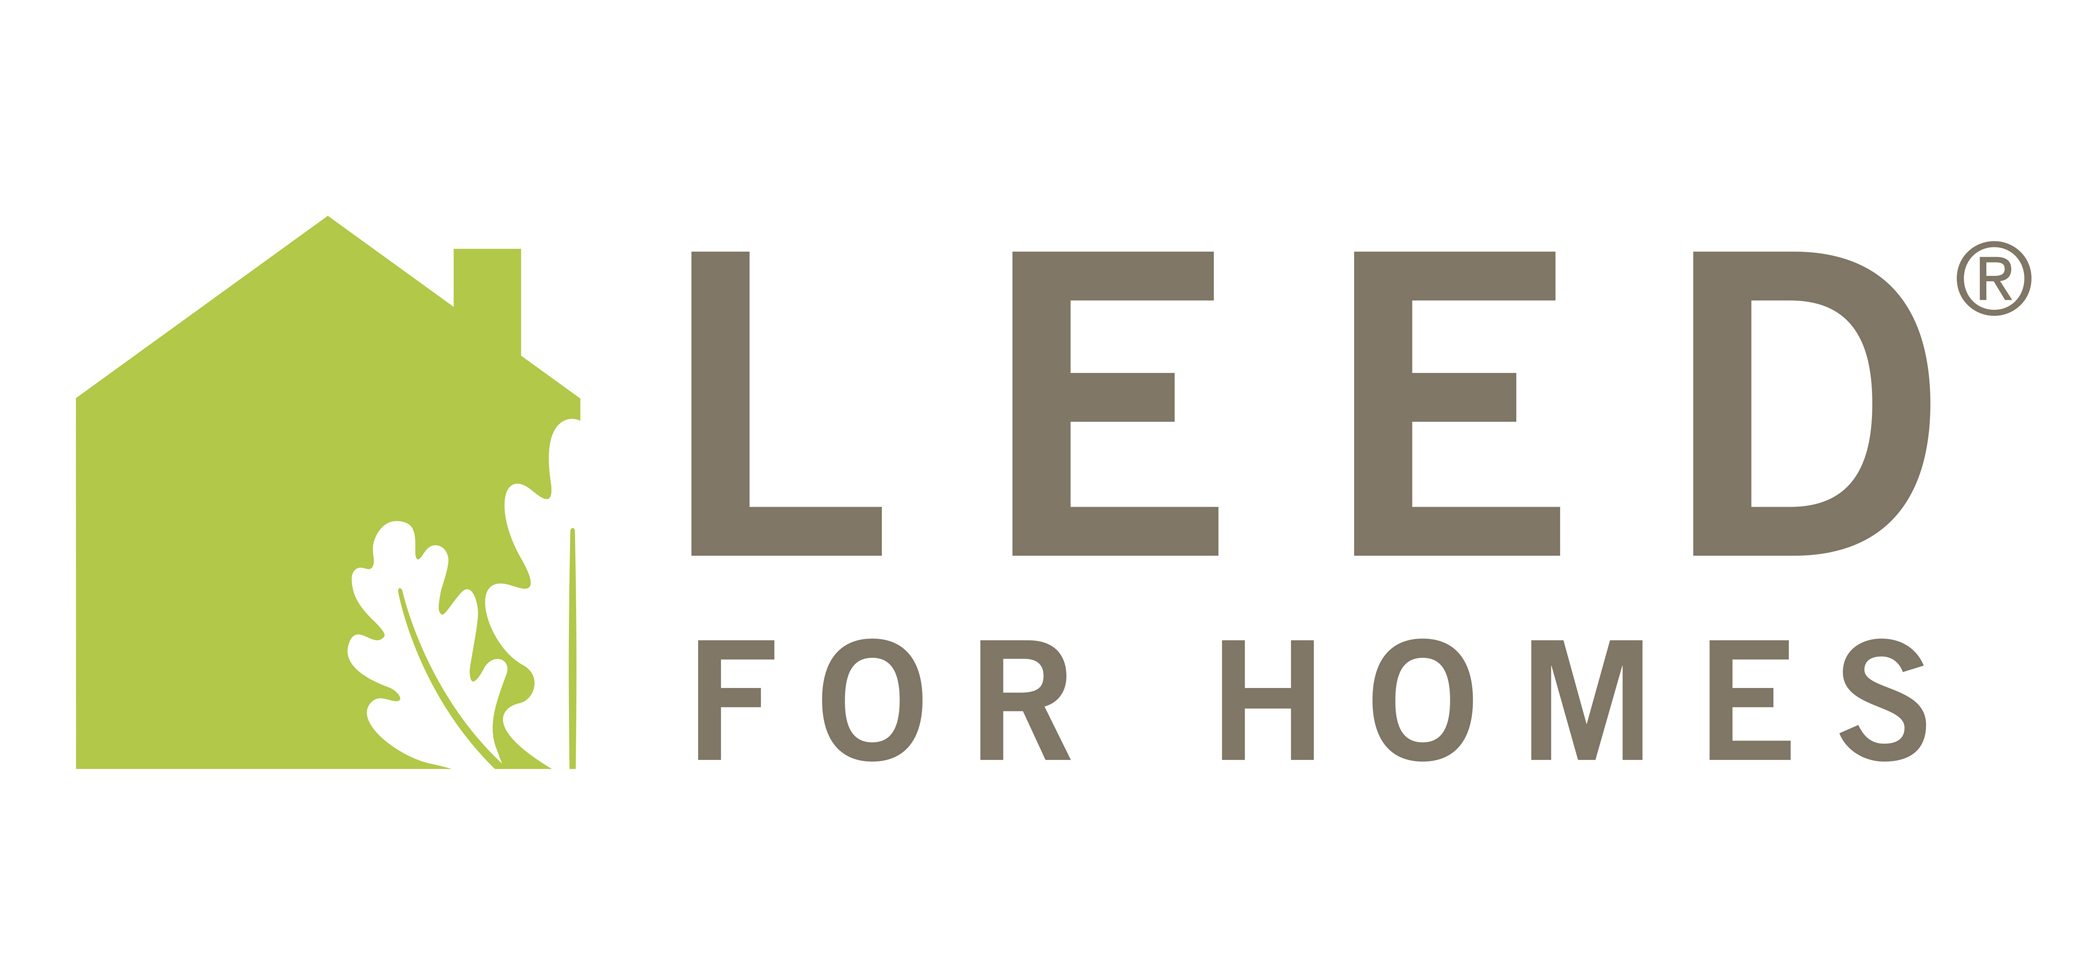 LEED-for-Homes-logo_Greening-Homes.jpg